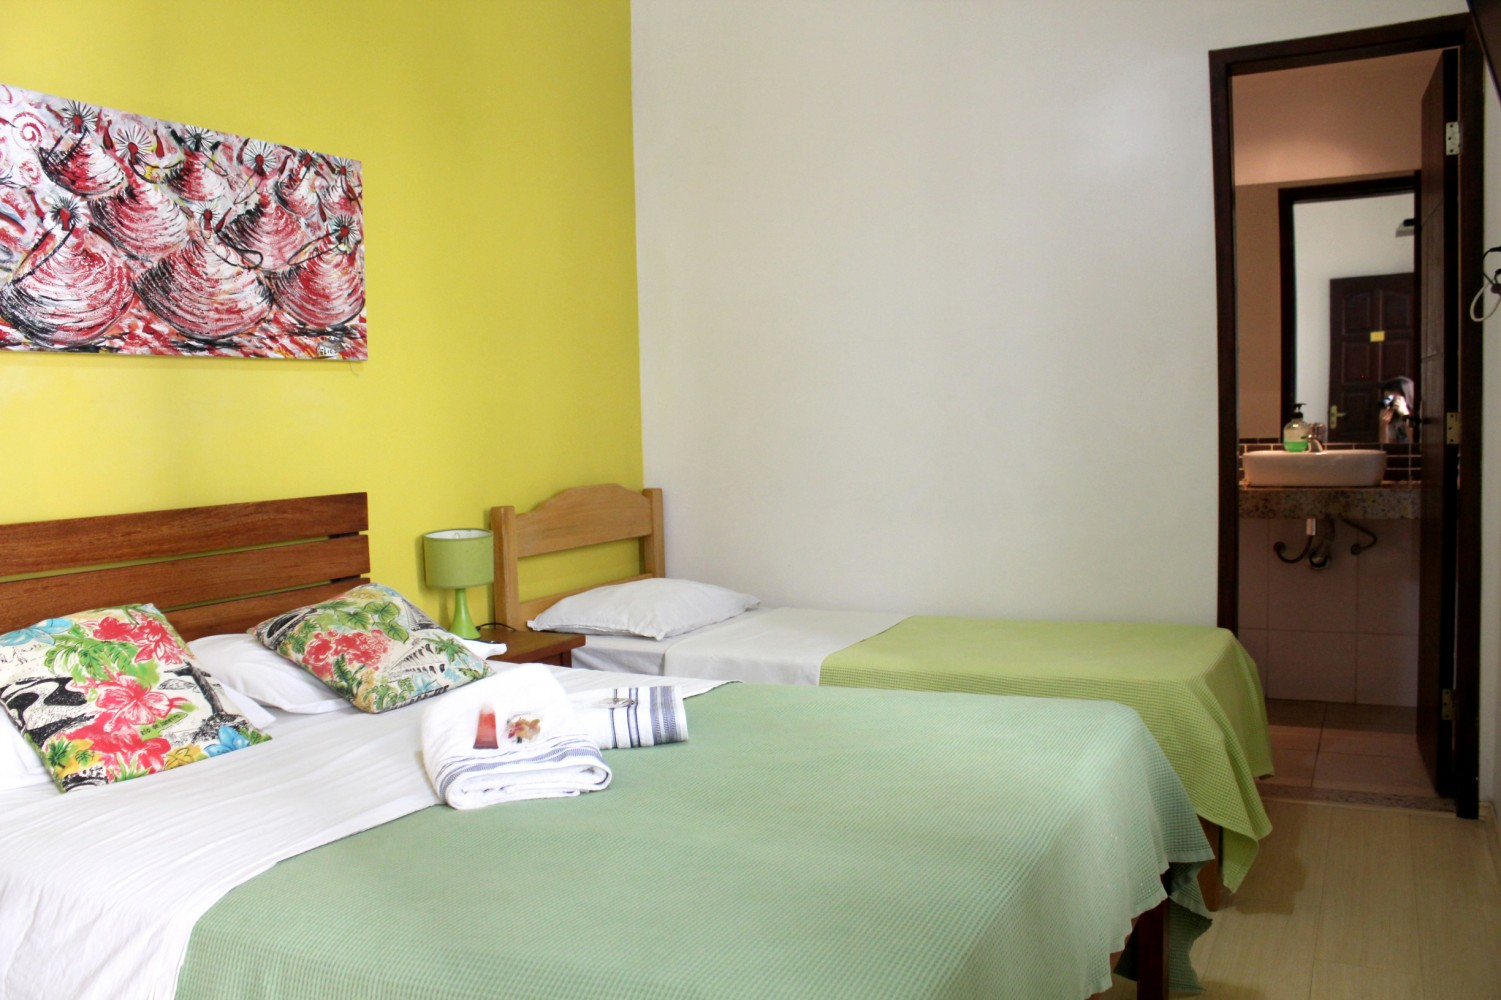 Mango Tree Hostel Ipanema Facebook # Muebles Nova Luxe Zacatecas